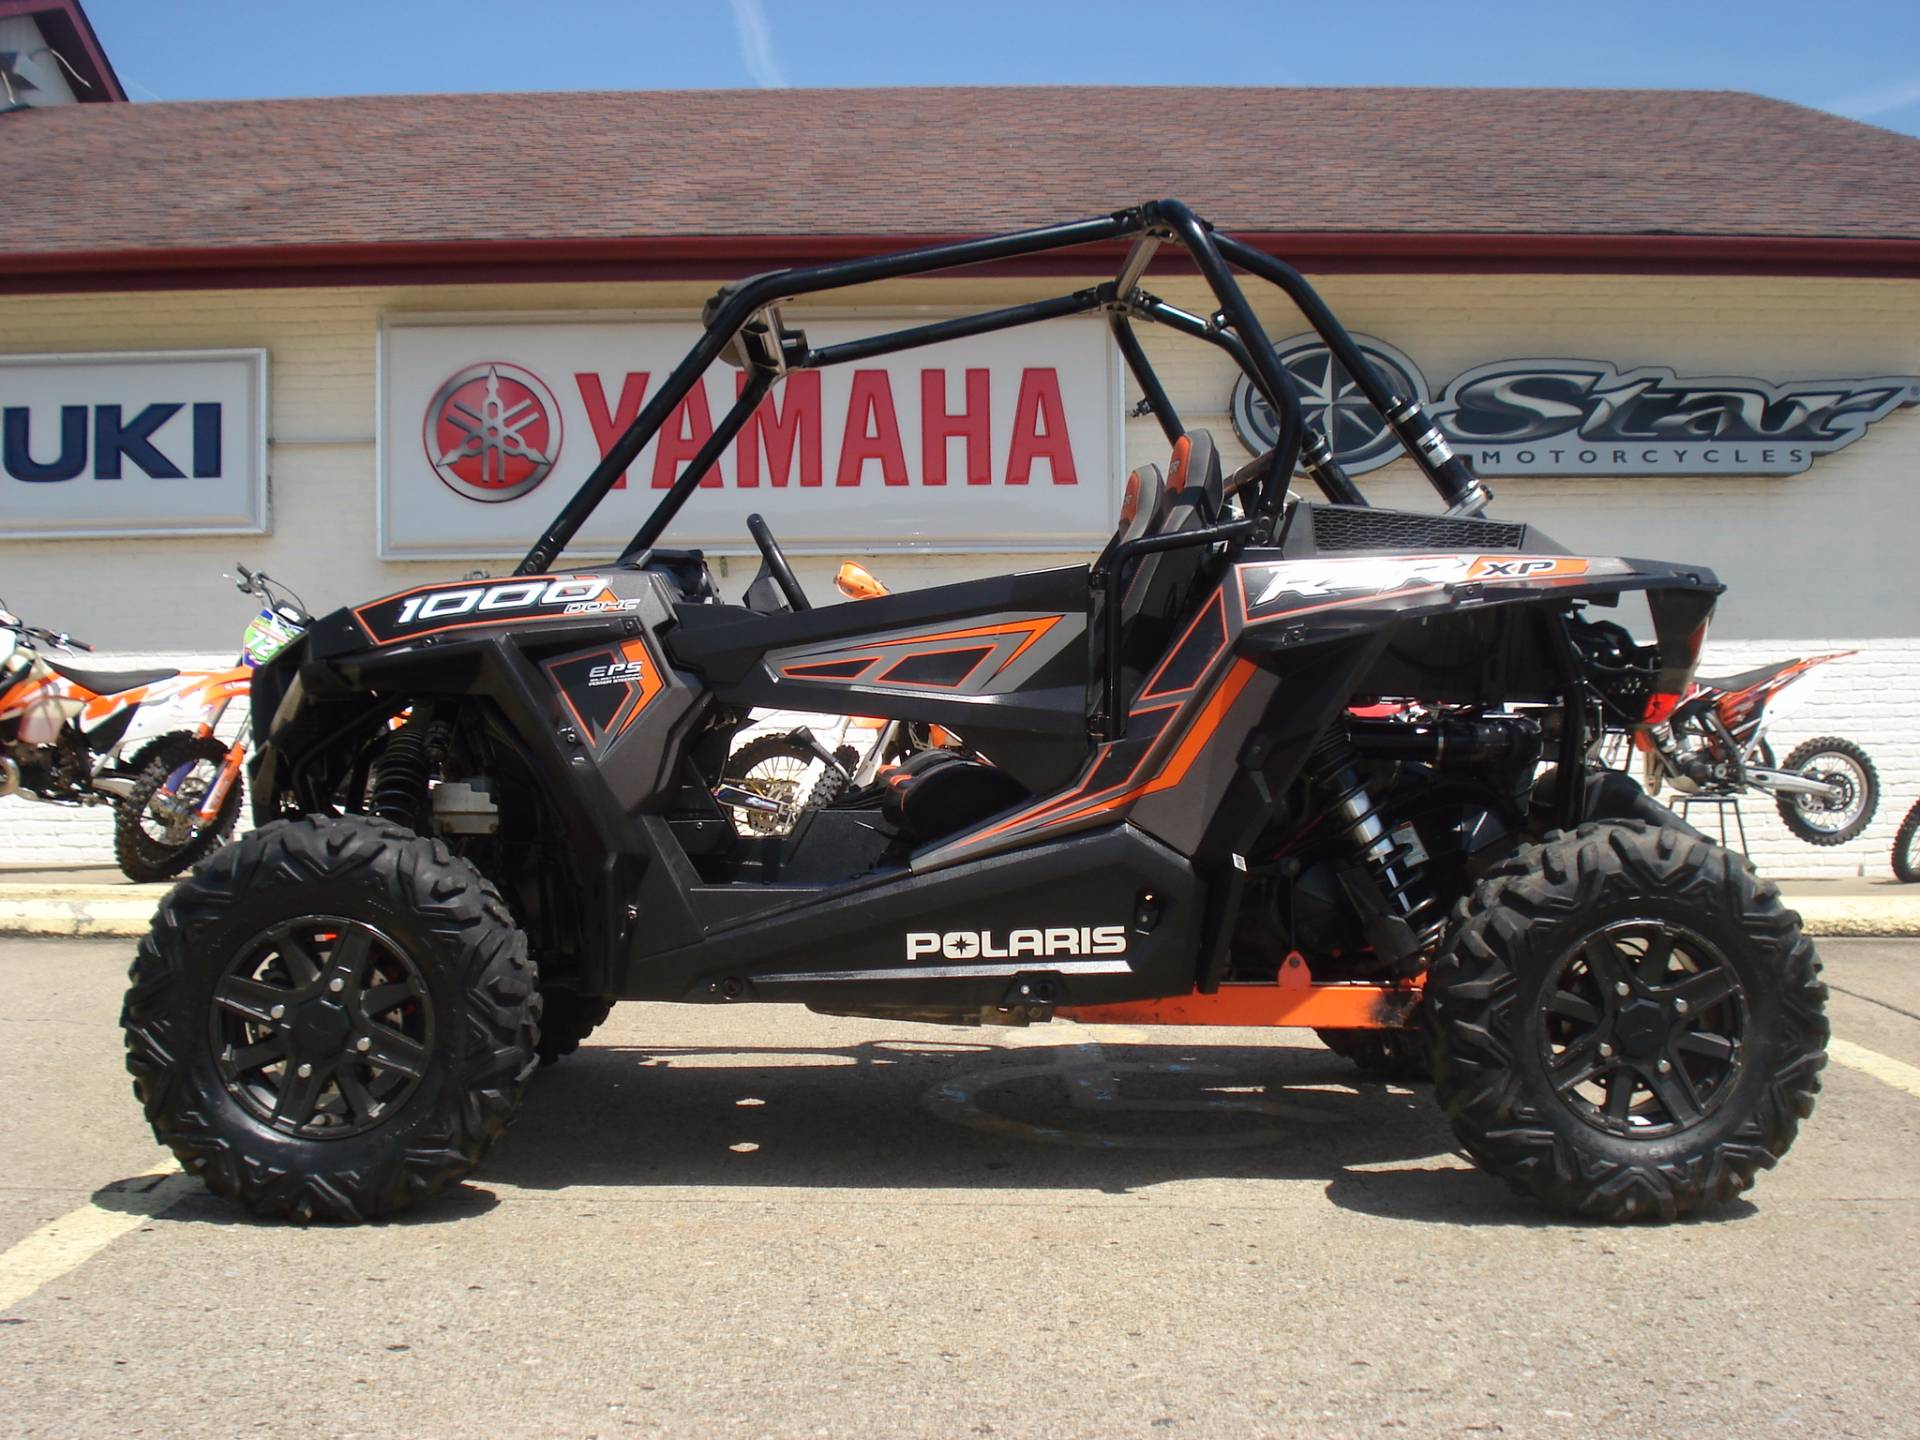 2014 Polaris RZR XP 1000 EPS for sale 58381